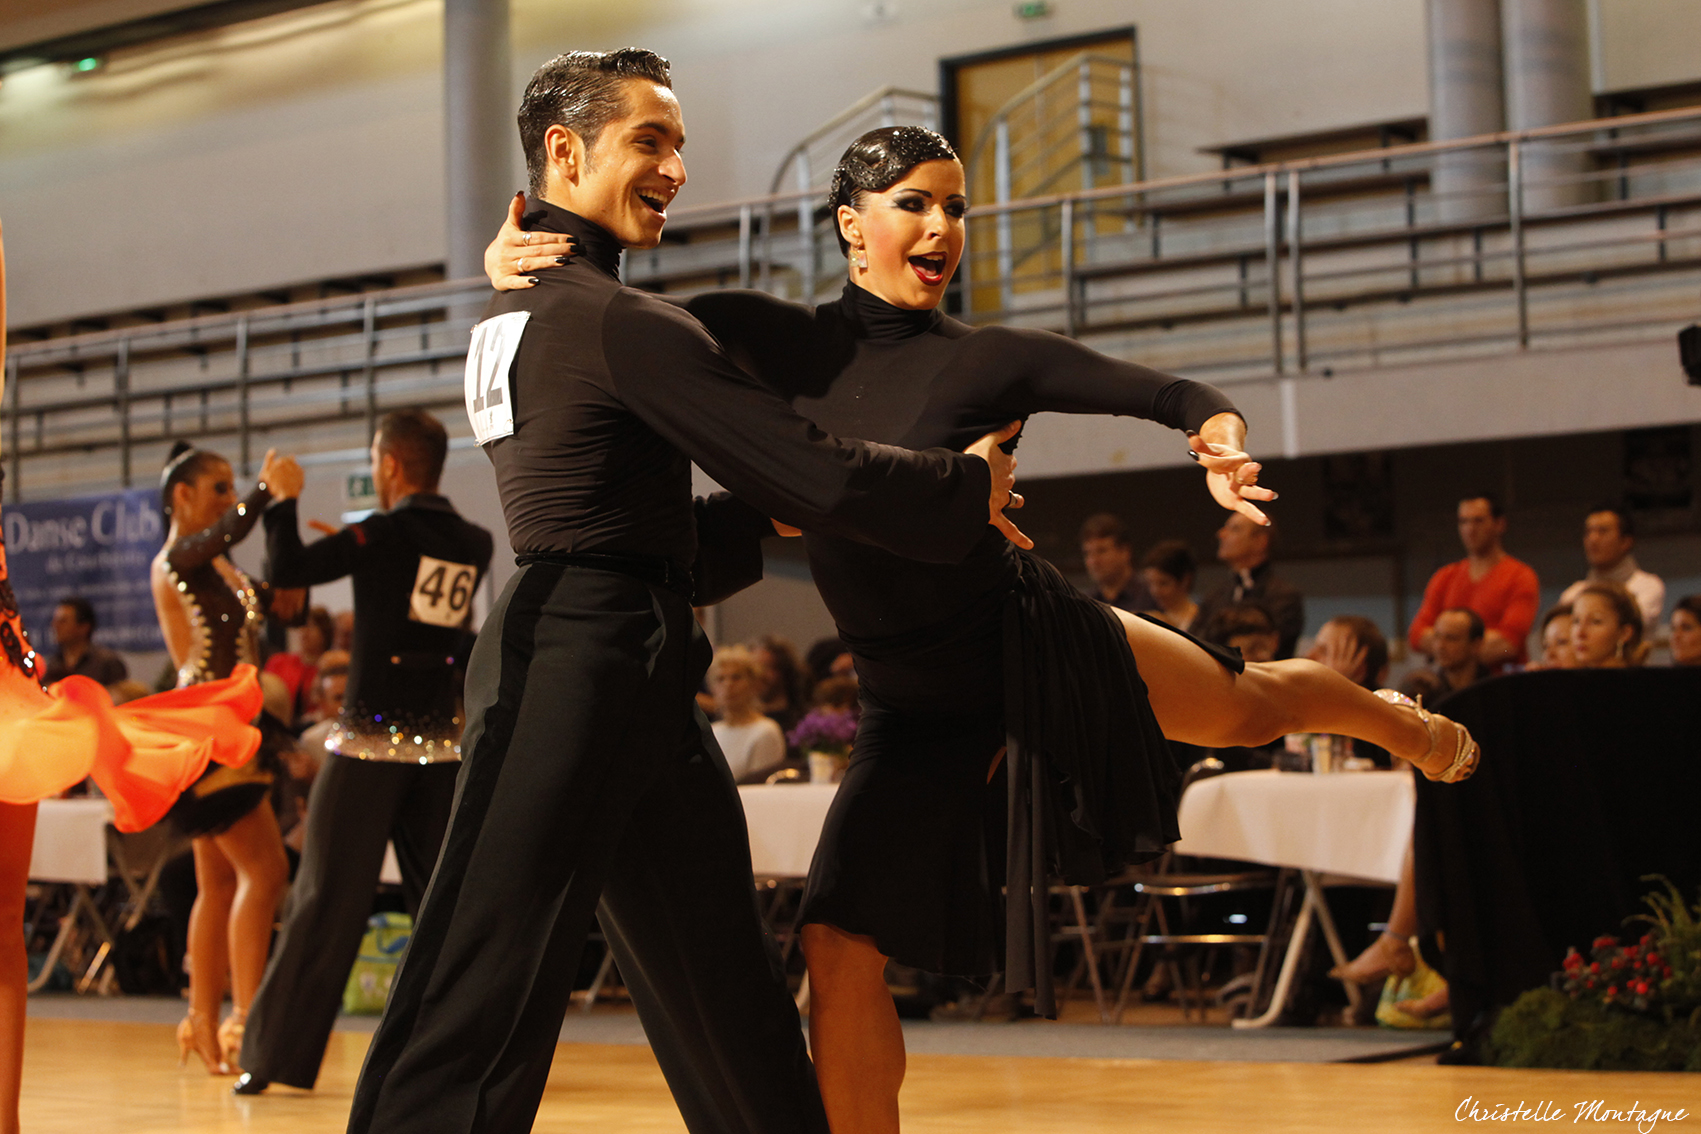 NDE 2014 - Grand Prix International